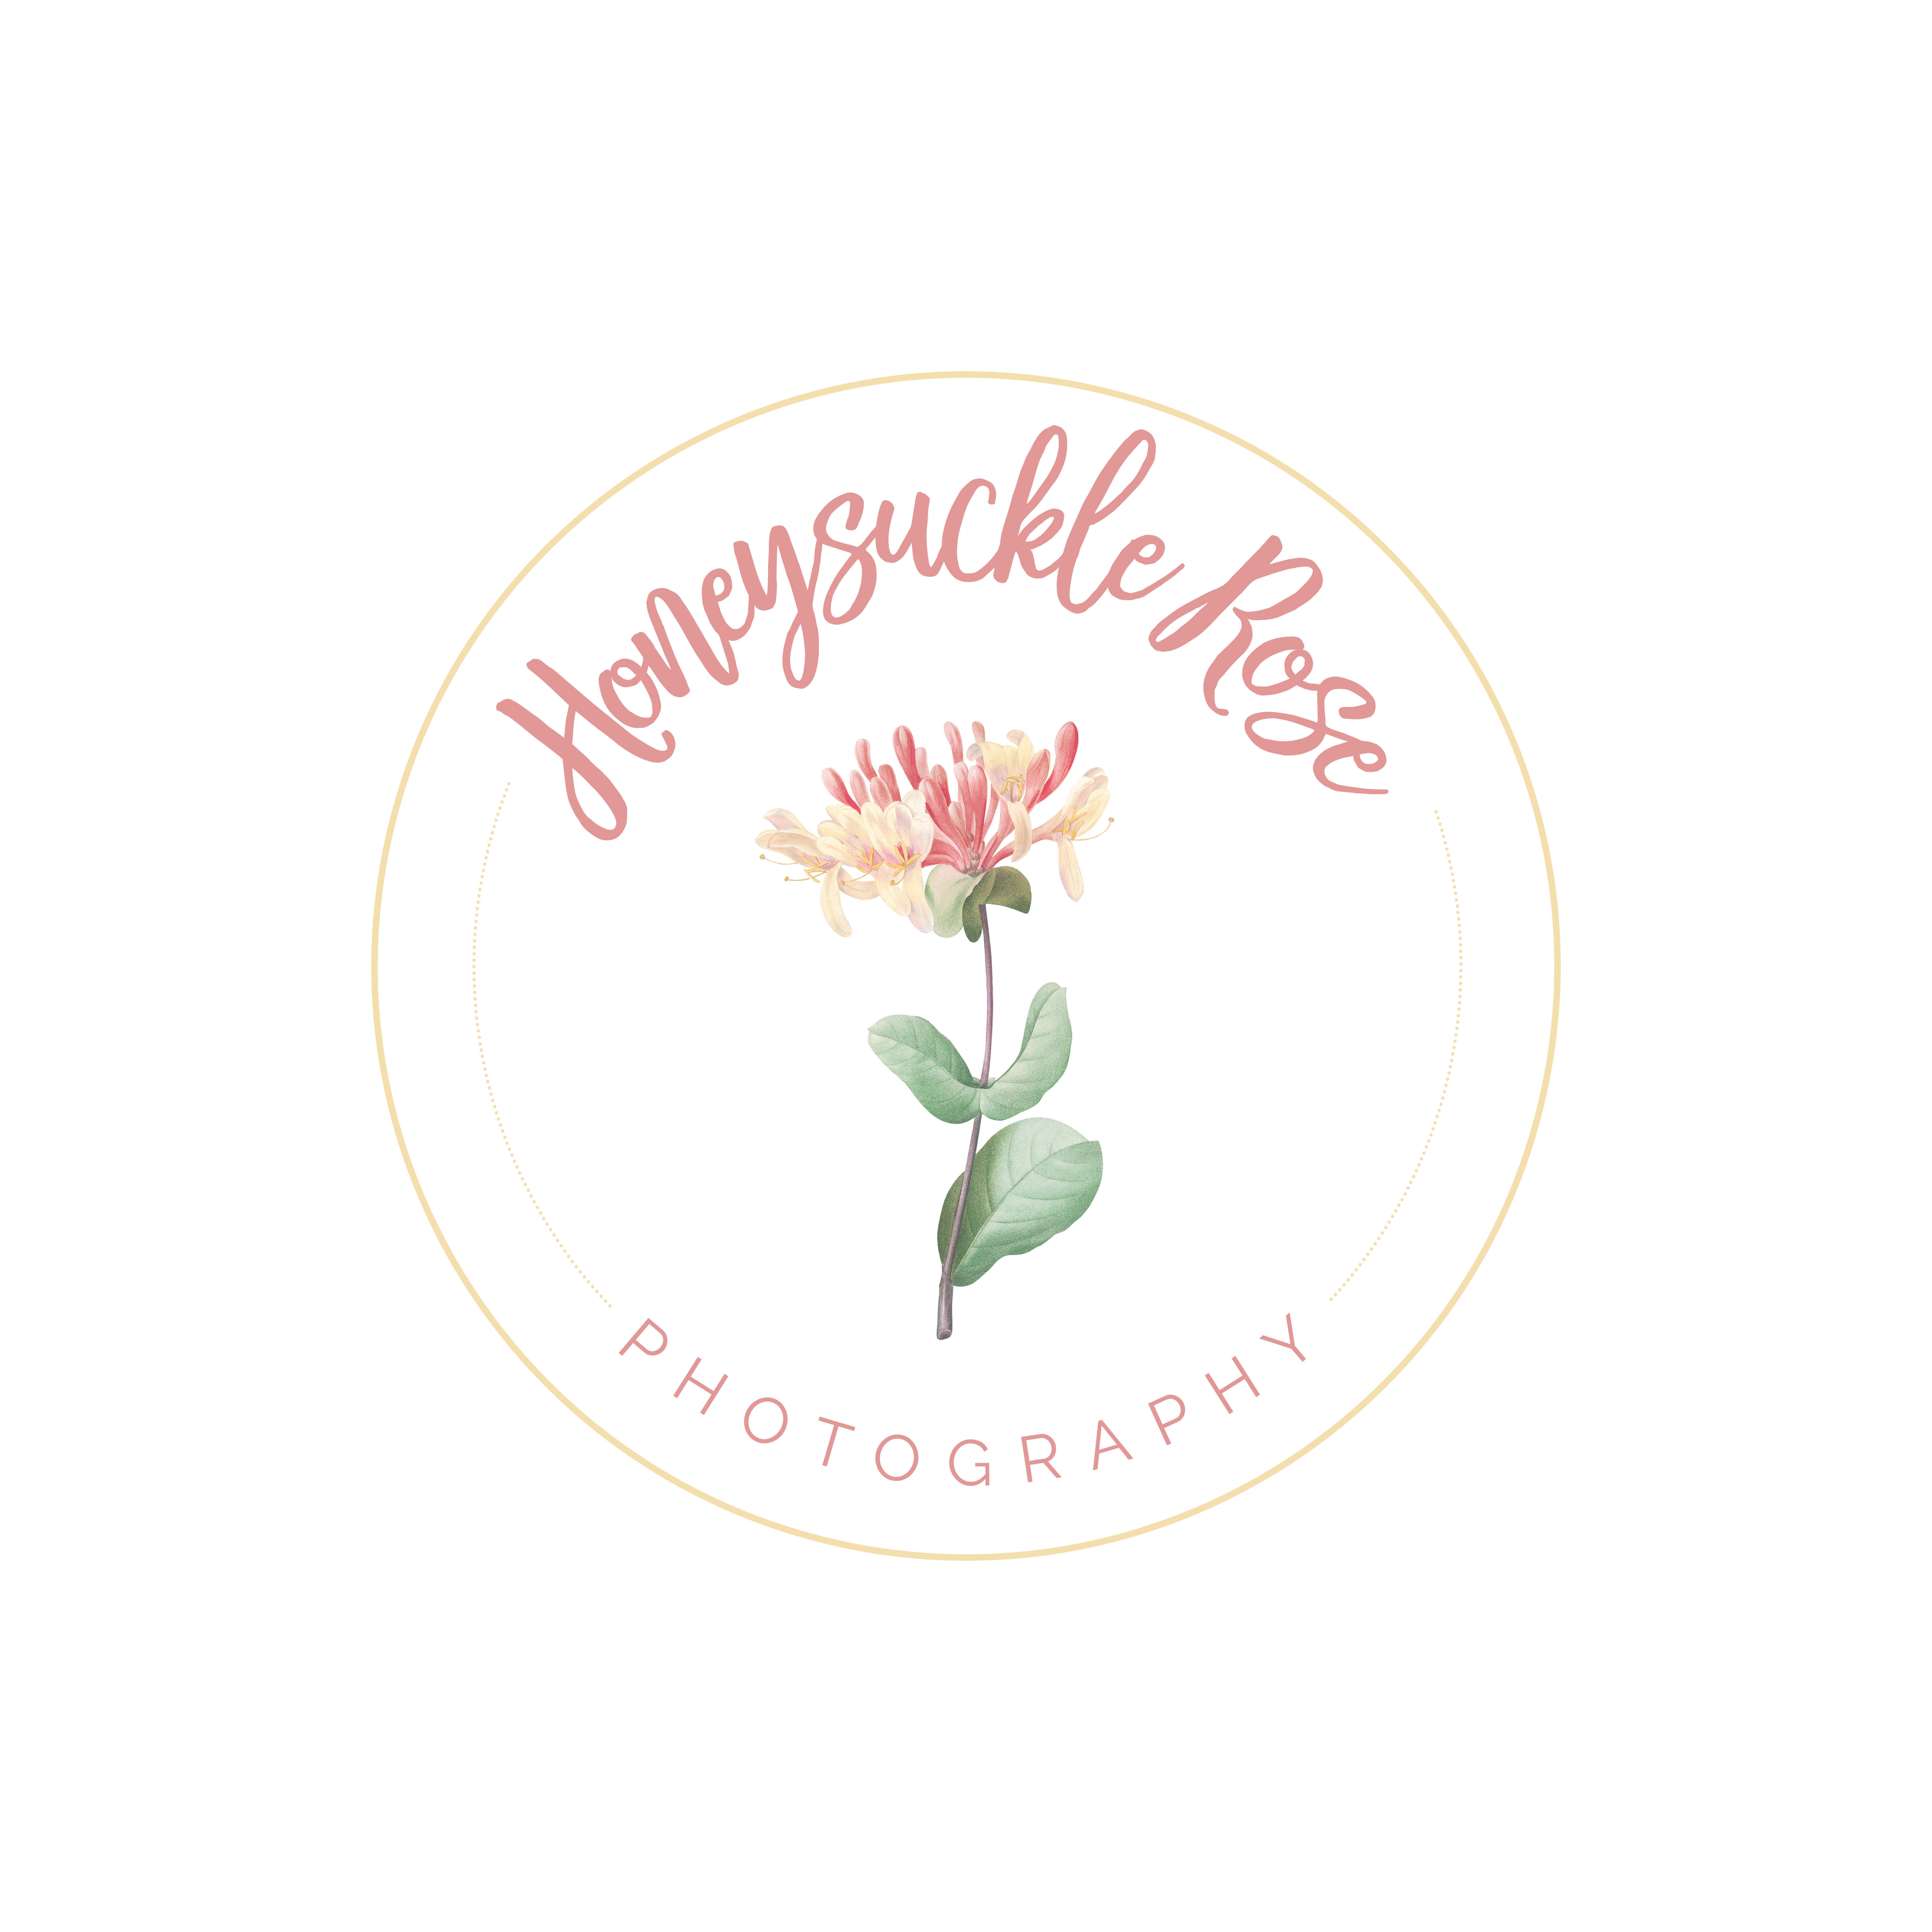 Honeysuckle Rose Photography